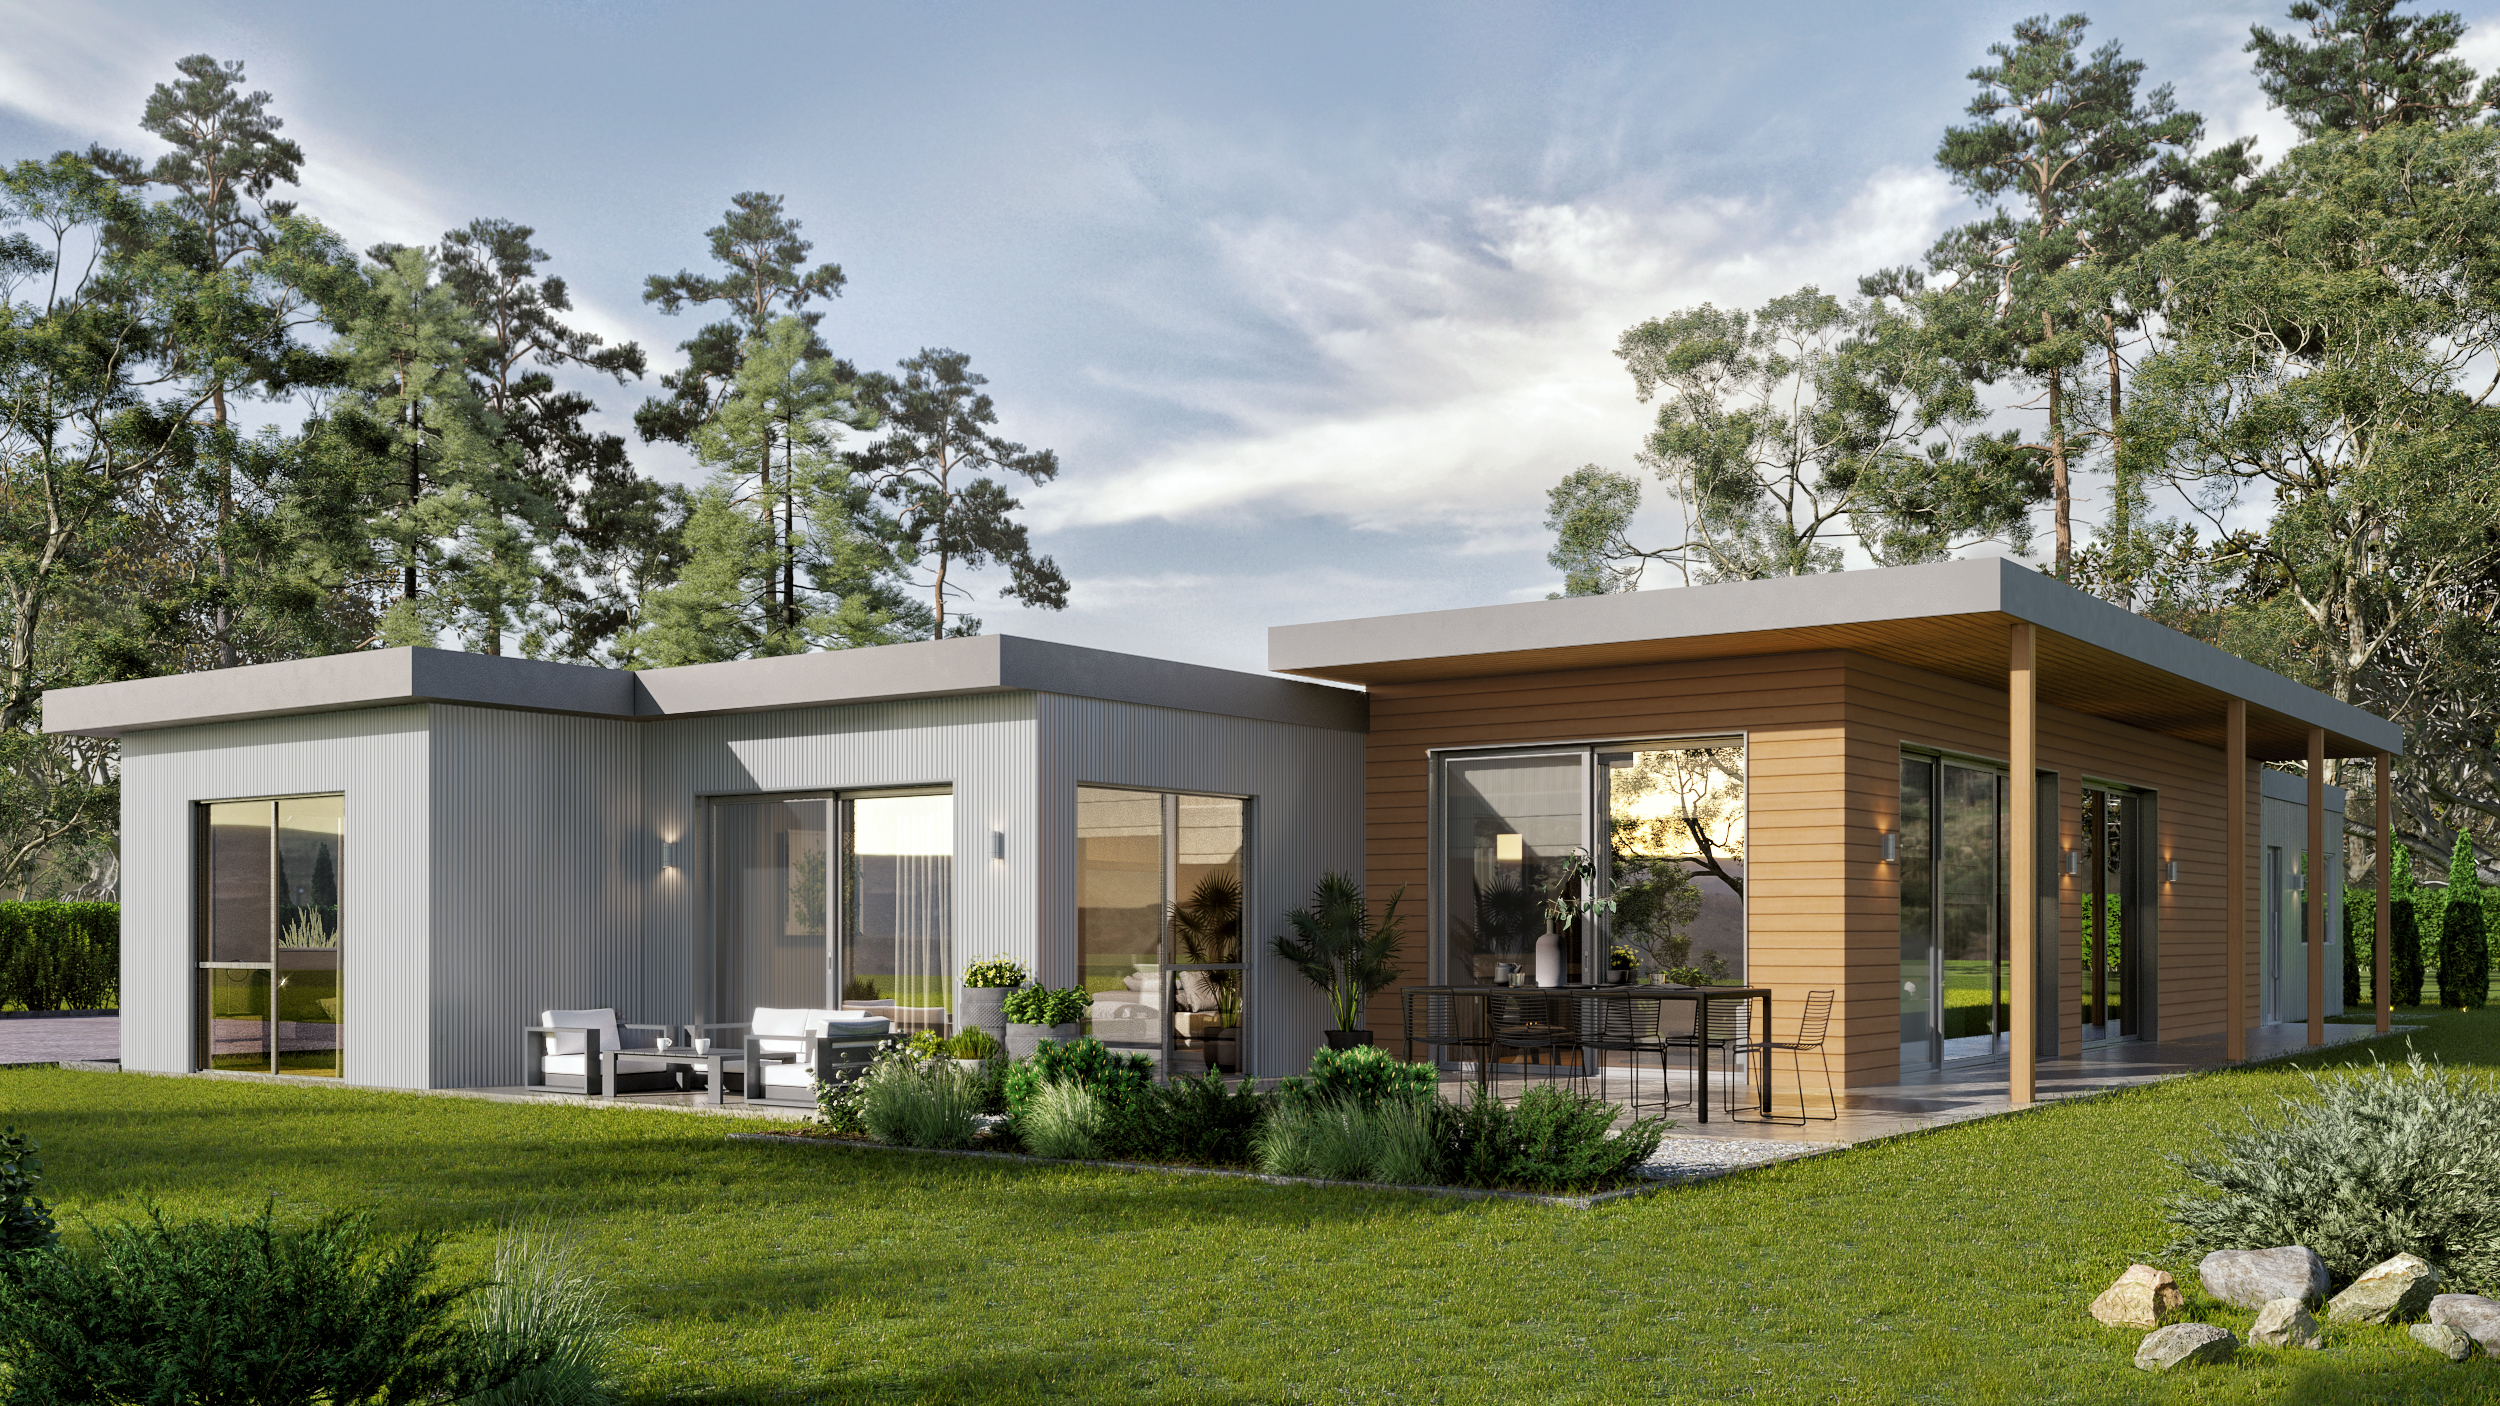 Prefab homes are the healthiest, safest option for homeowners.